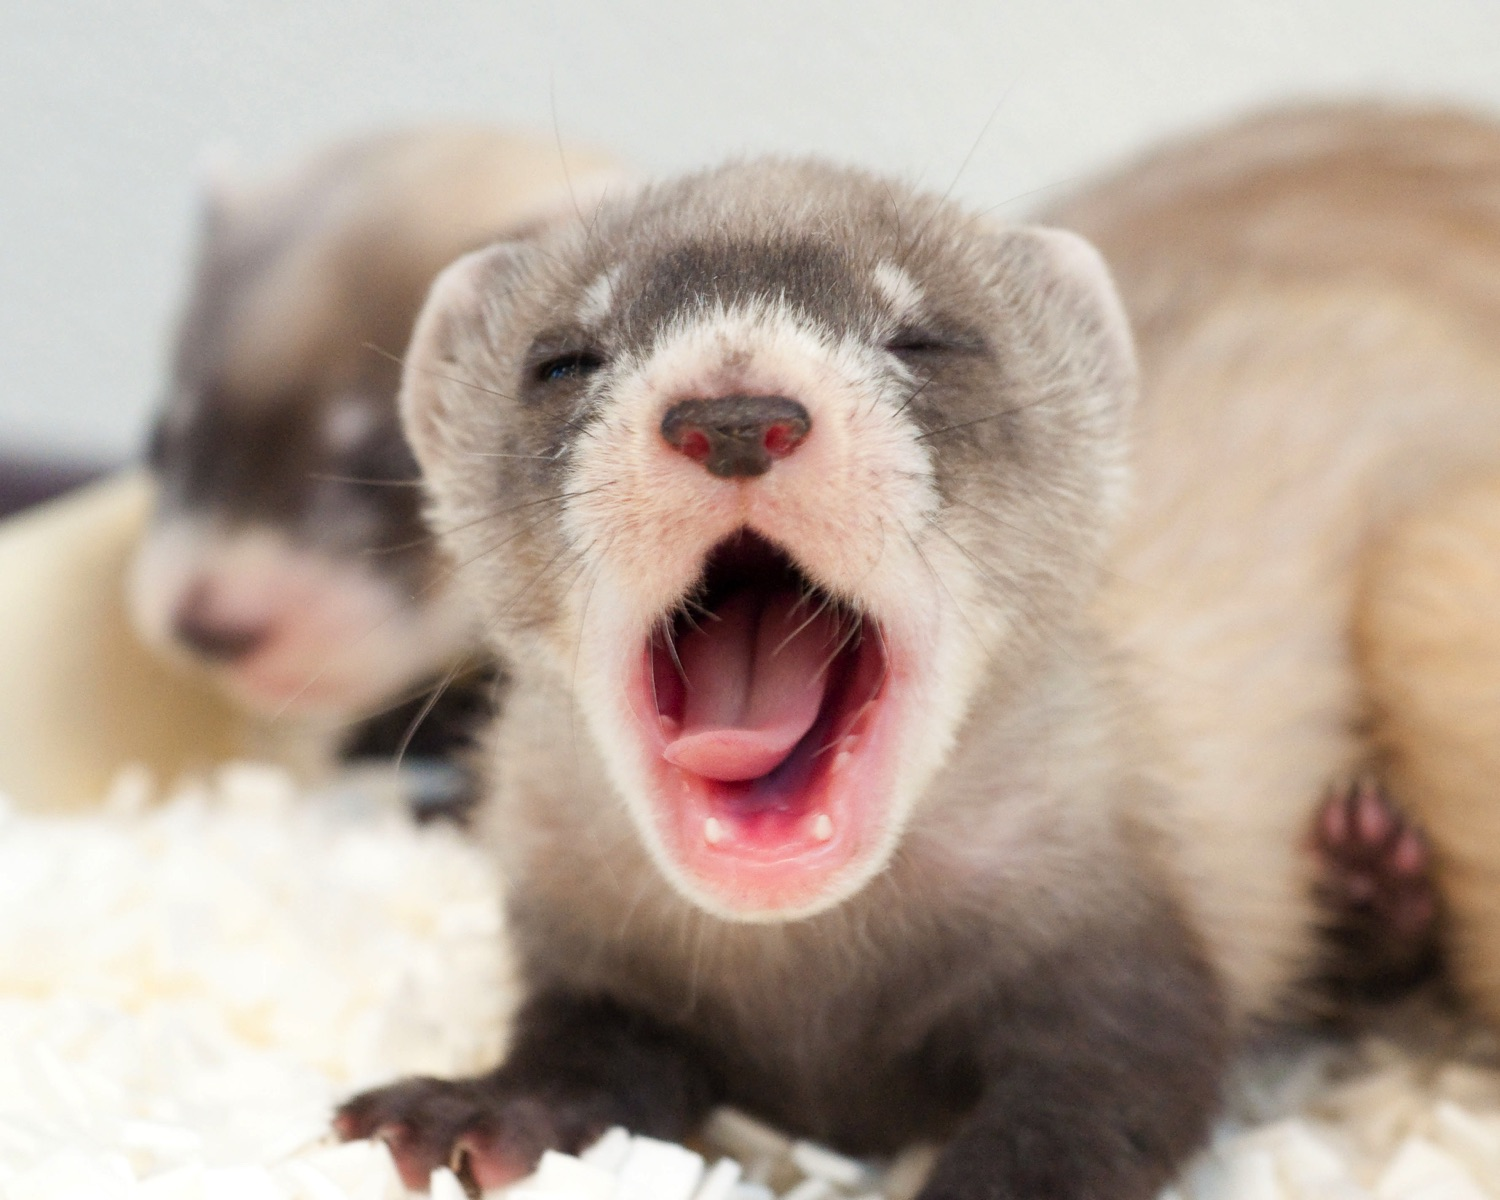 photo:blackfootedferret.org